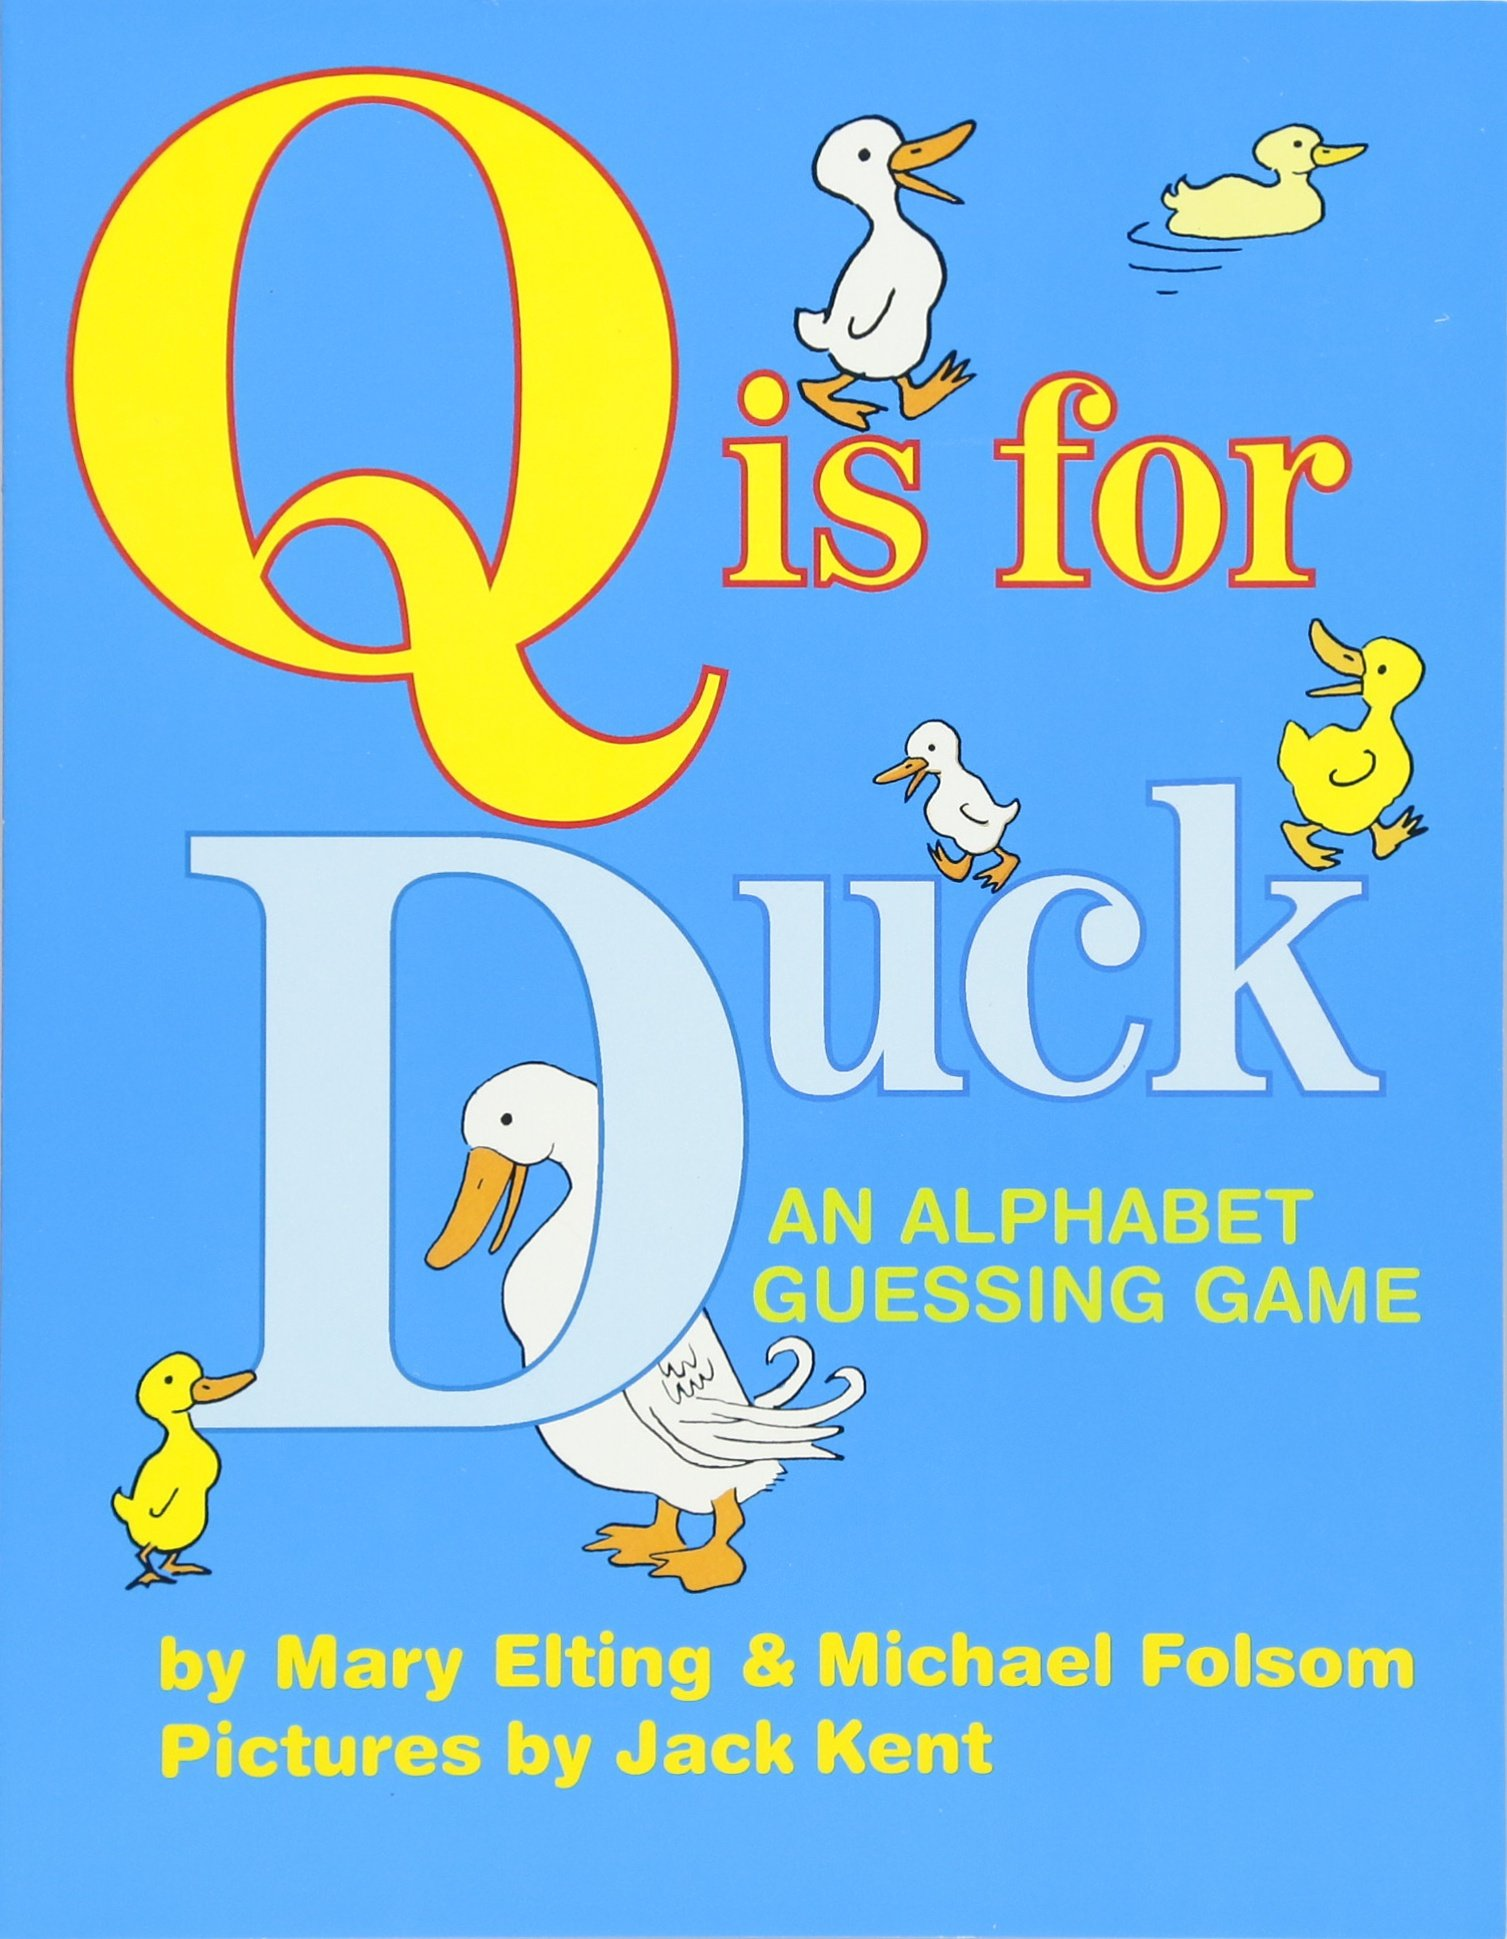 The Best ABC Picture Books - Q is for Duck.jpg